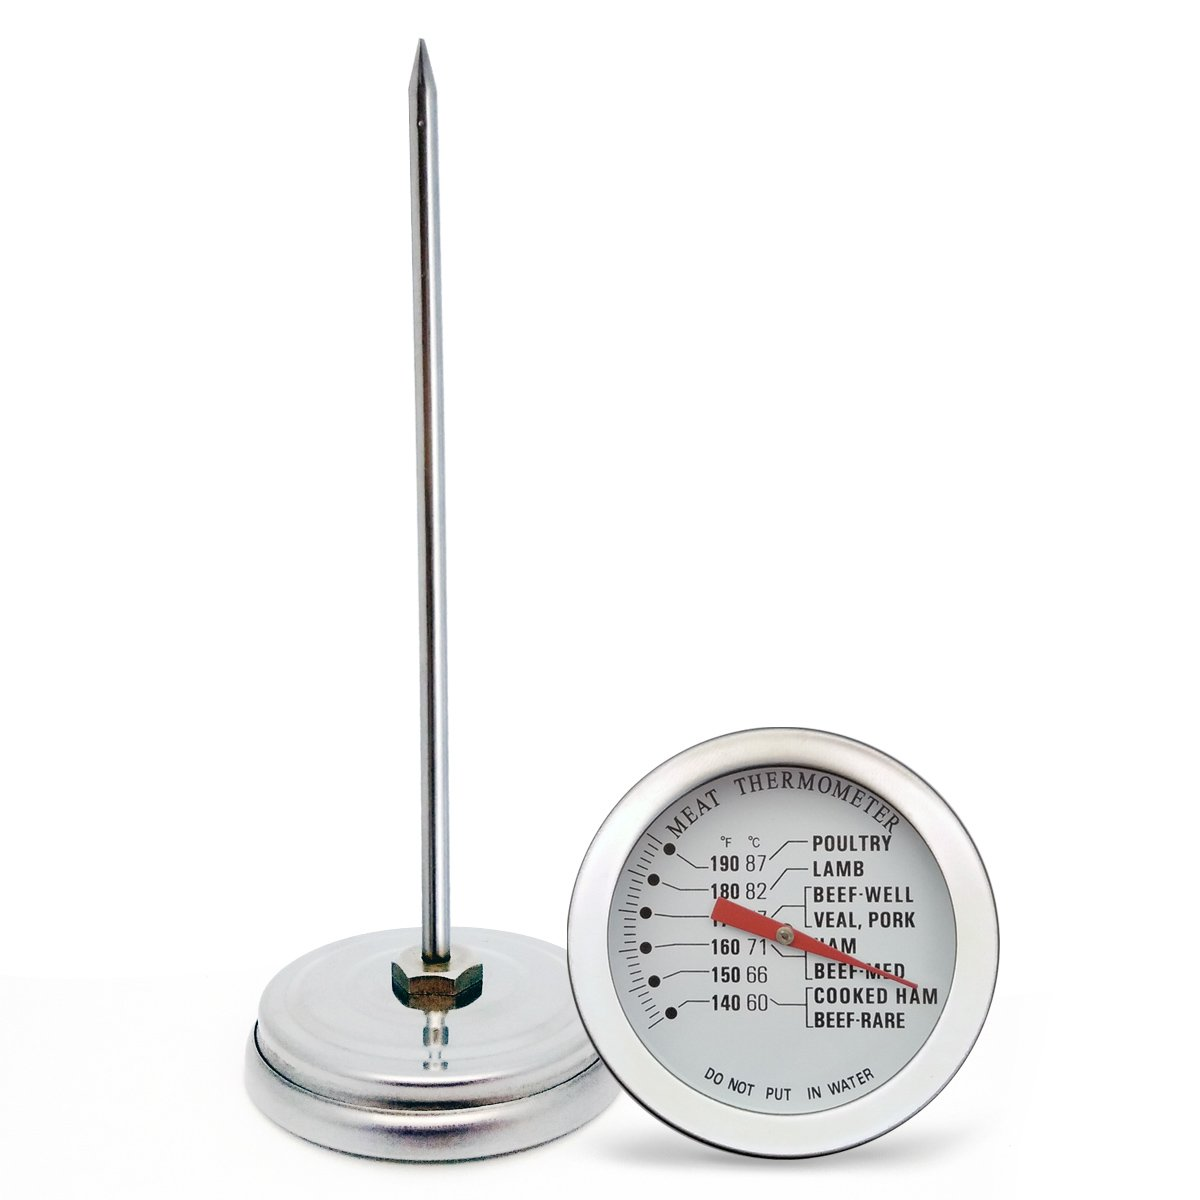 KT THERMO Candy/Deep Fry Thermometer 2-Inch Dial Instant Read Stainless Steel Thermometers with Clip 12-Inch Long Stem Classic